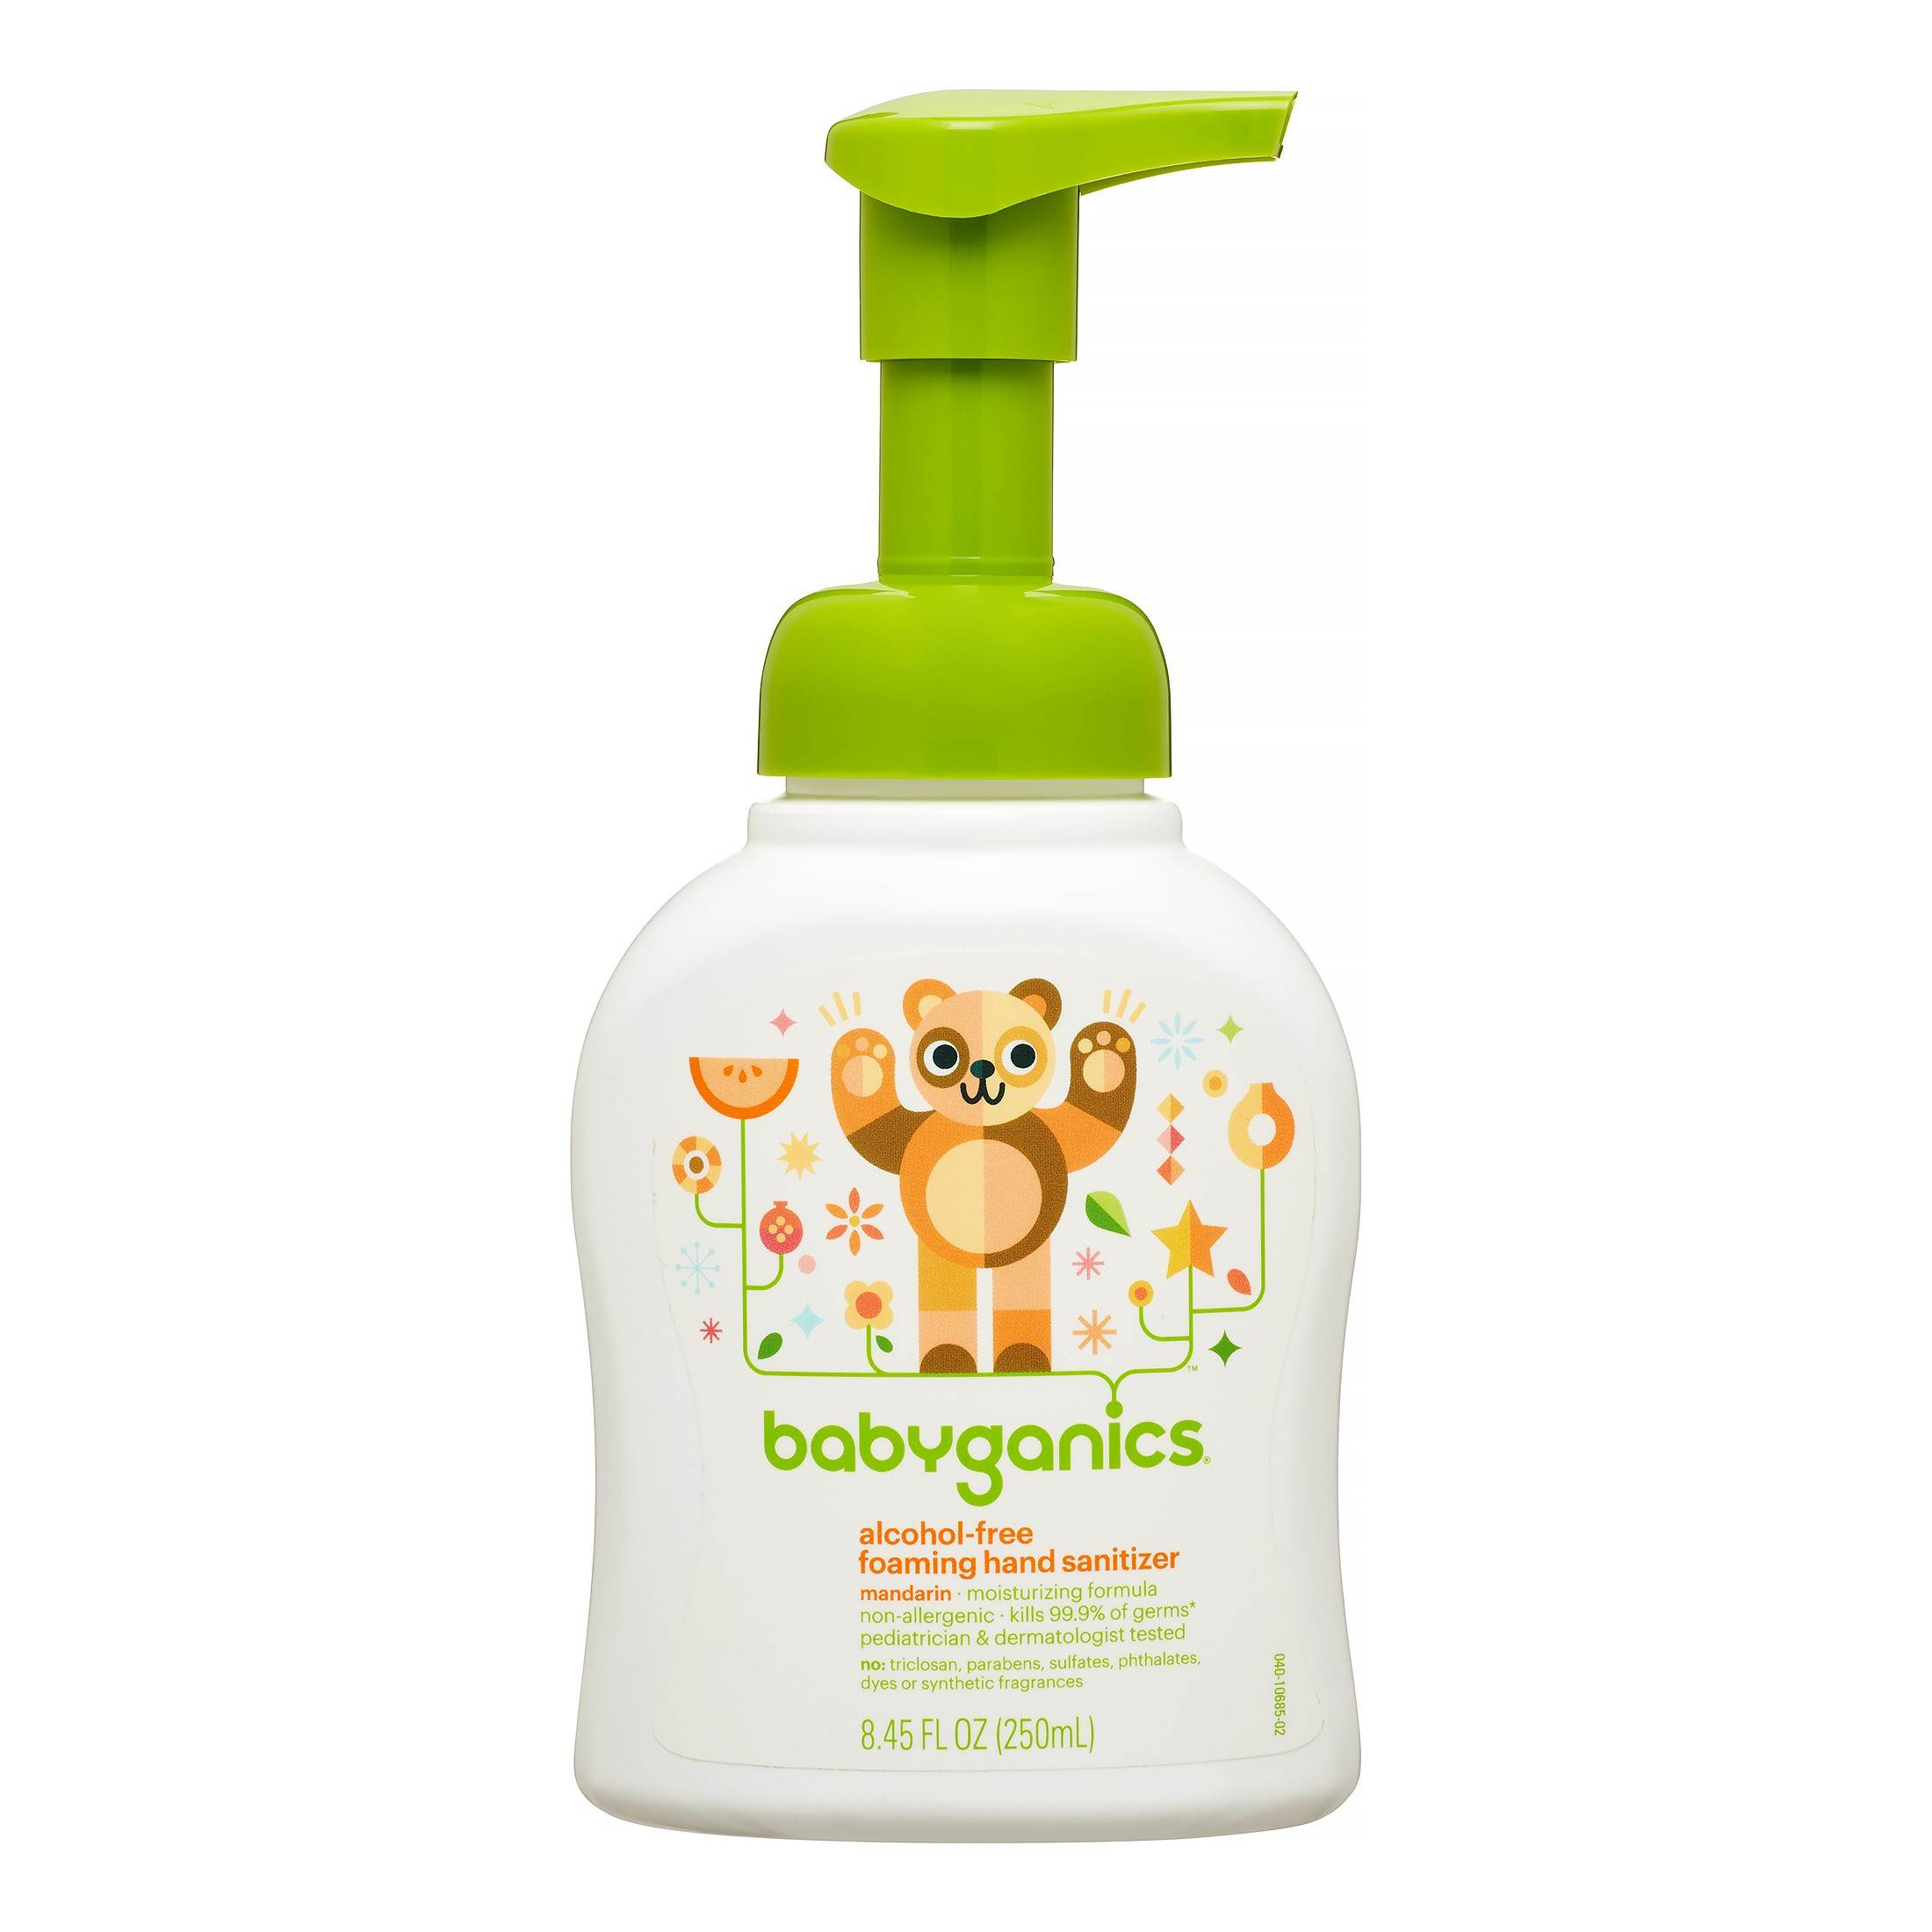 babyganics-hand-sanitizer-cream